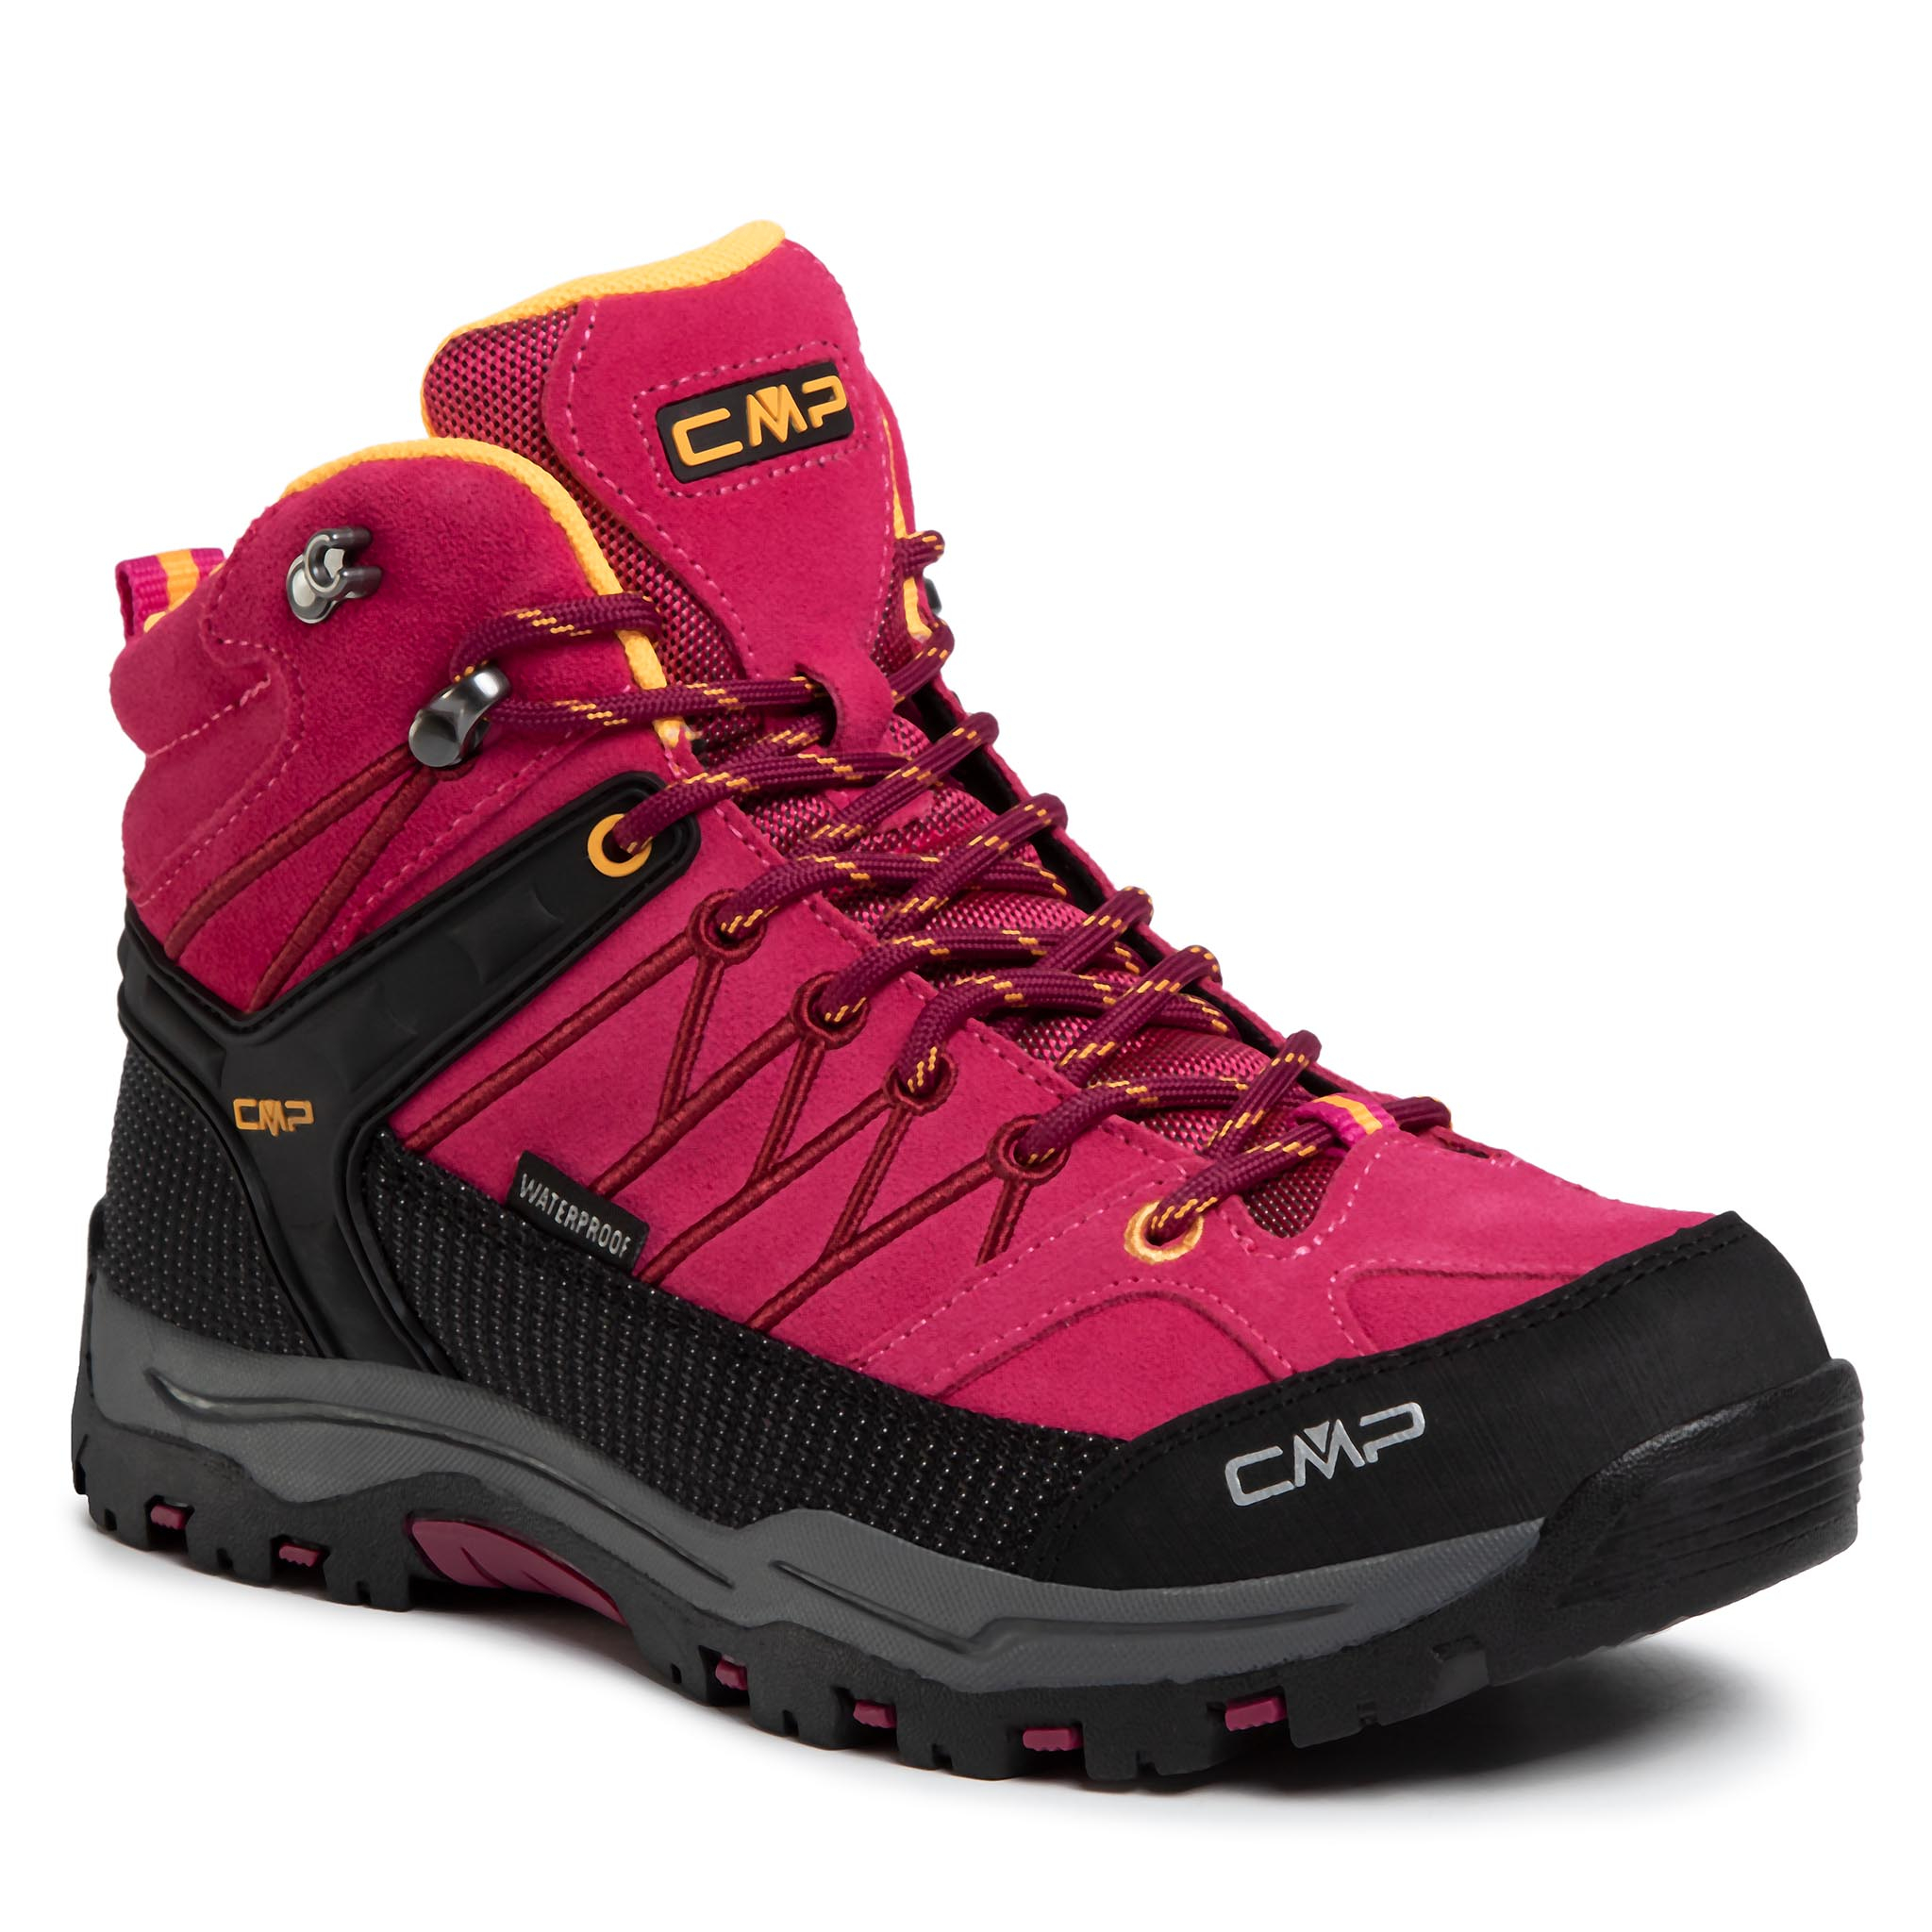 Trekkings Cmp - Kids Rigel Mid Trekking Shoes Wp 3q12944j Bouganville/Goji 06he imagine epantofi.ro 2021